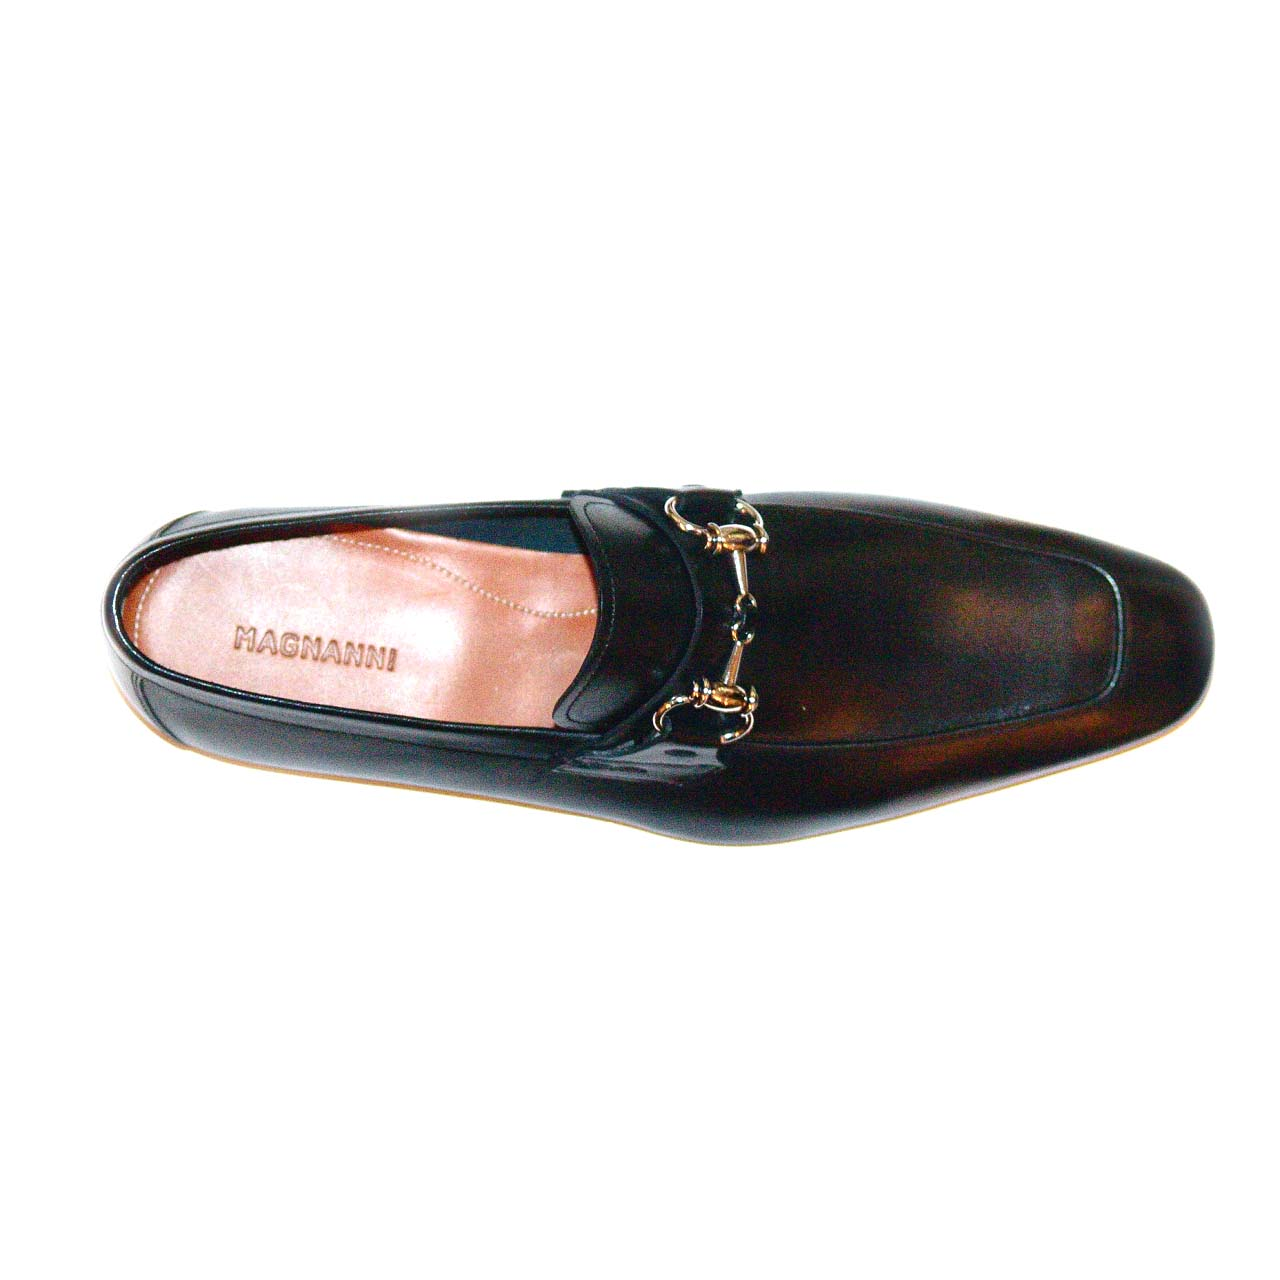 Magnanni 13008 Black Hand Antiqued Leather With Light Weight Super Flex Sole